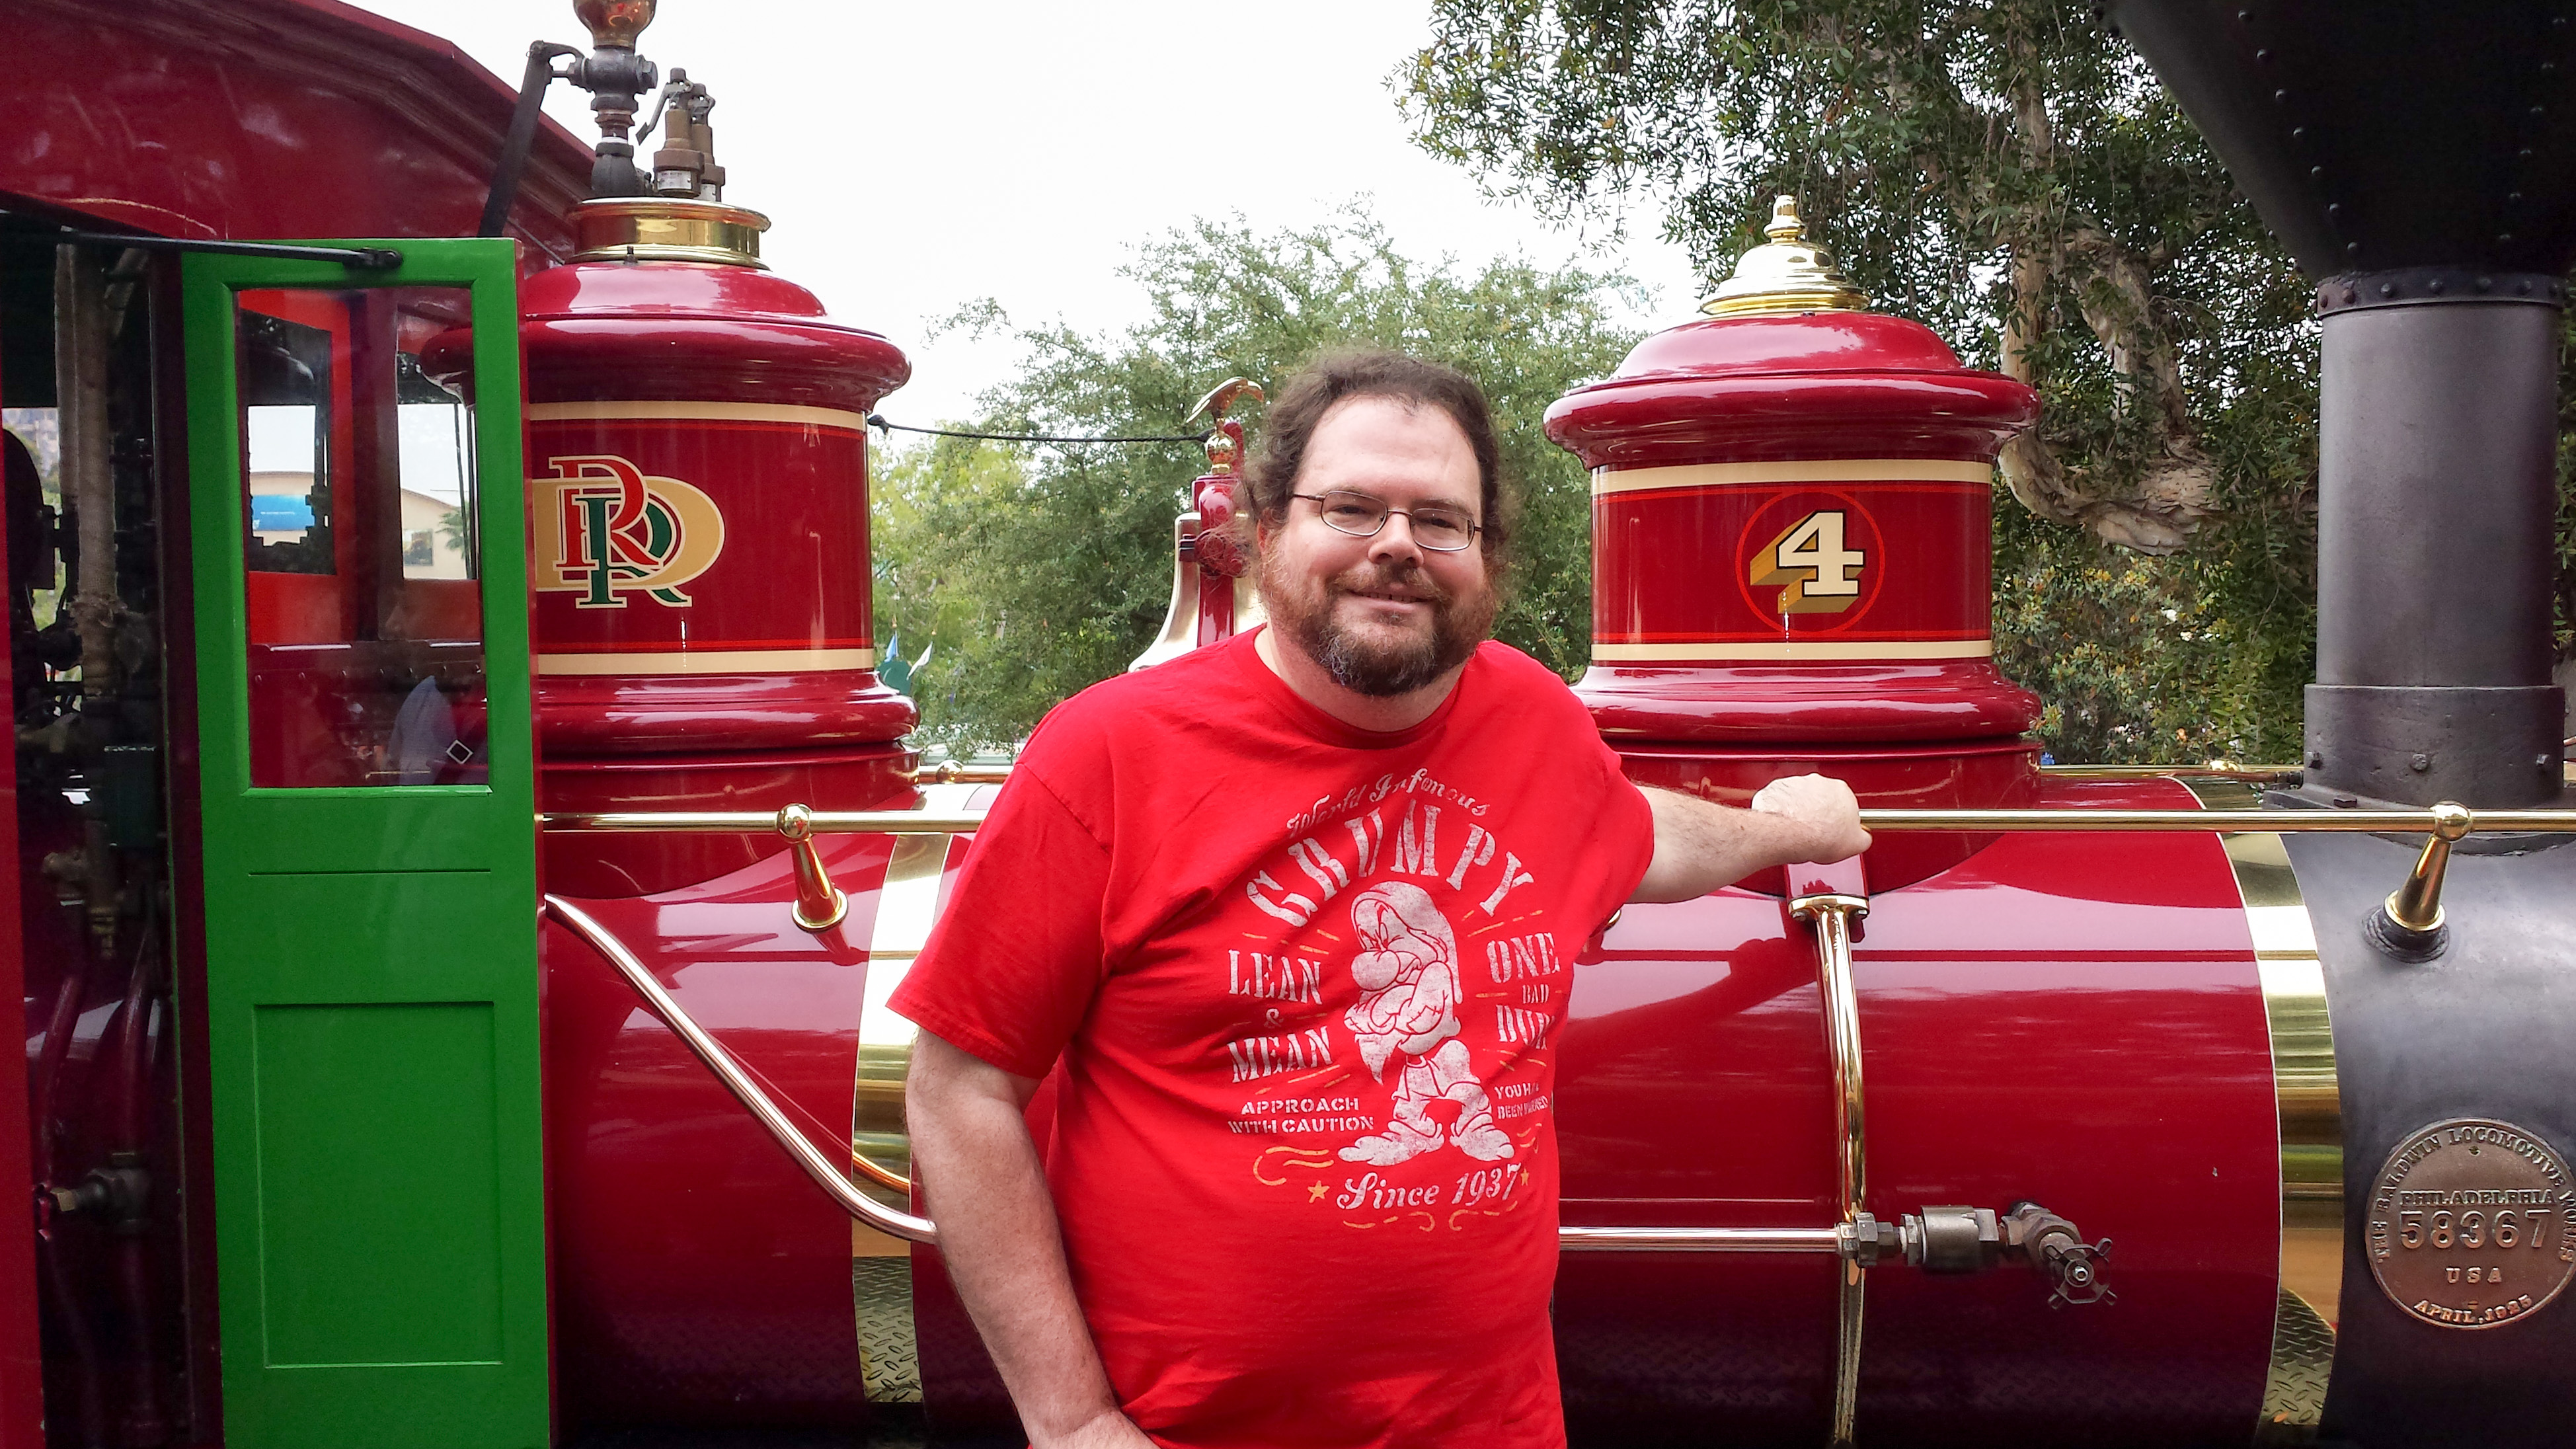 Patrick with Disneyland Railroad locomotive 4, Ernest S. Marsh